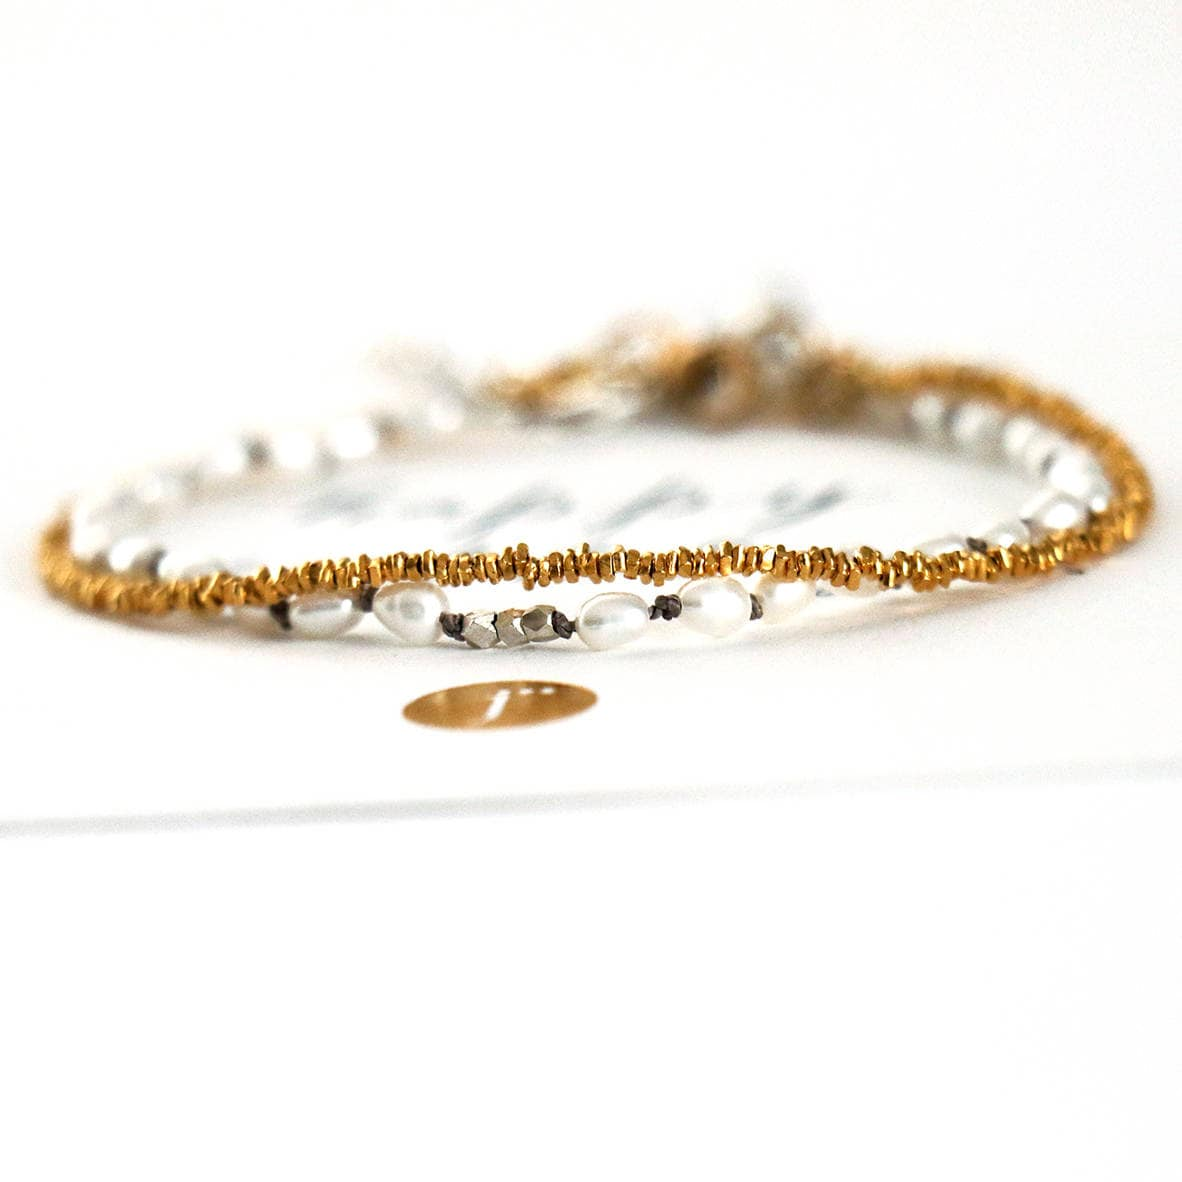 gold angel s heart picture bracelet elegant of p bangle hyutgr jewelry accessories plating